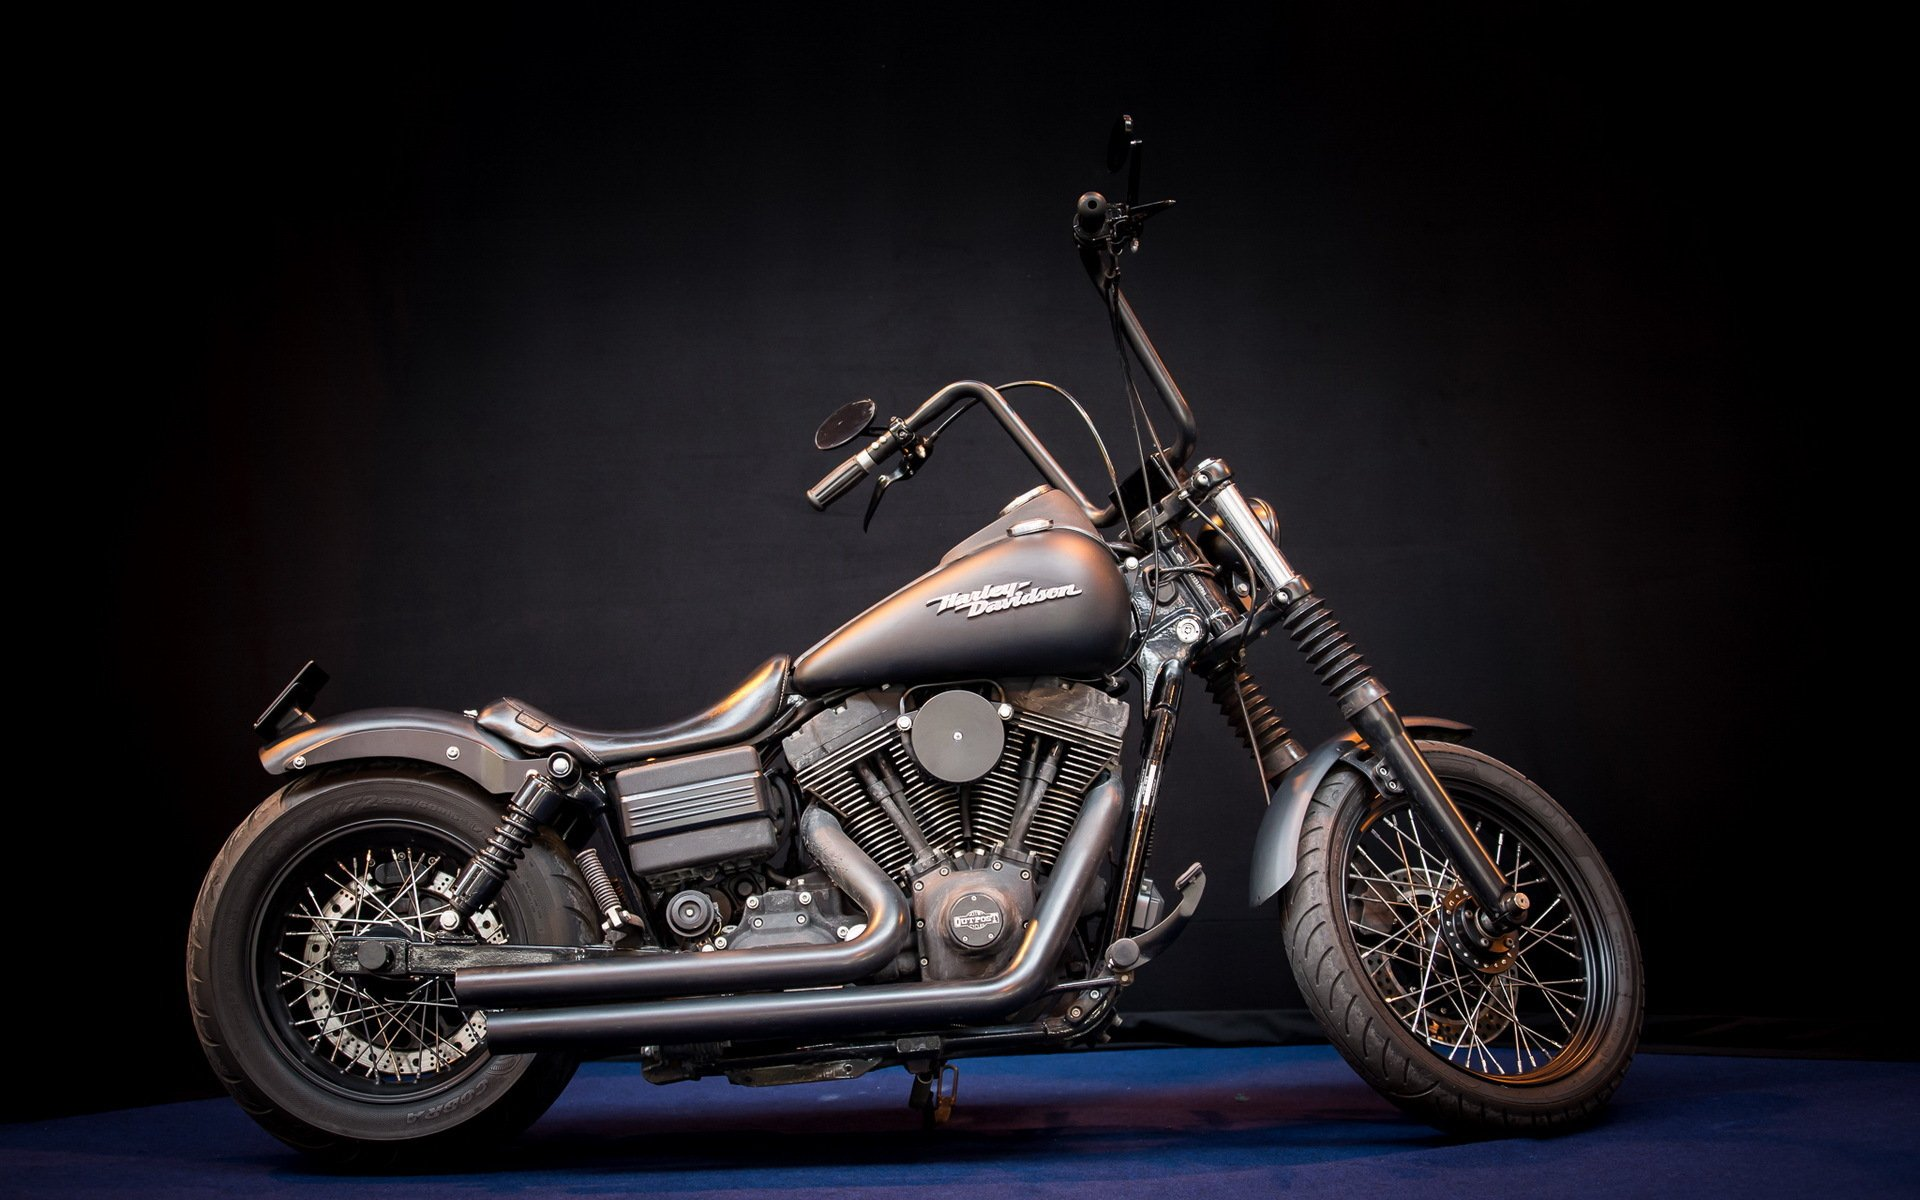 harley davidson mean machine мотоцикл